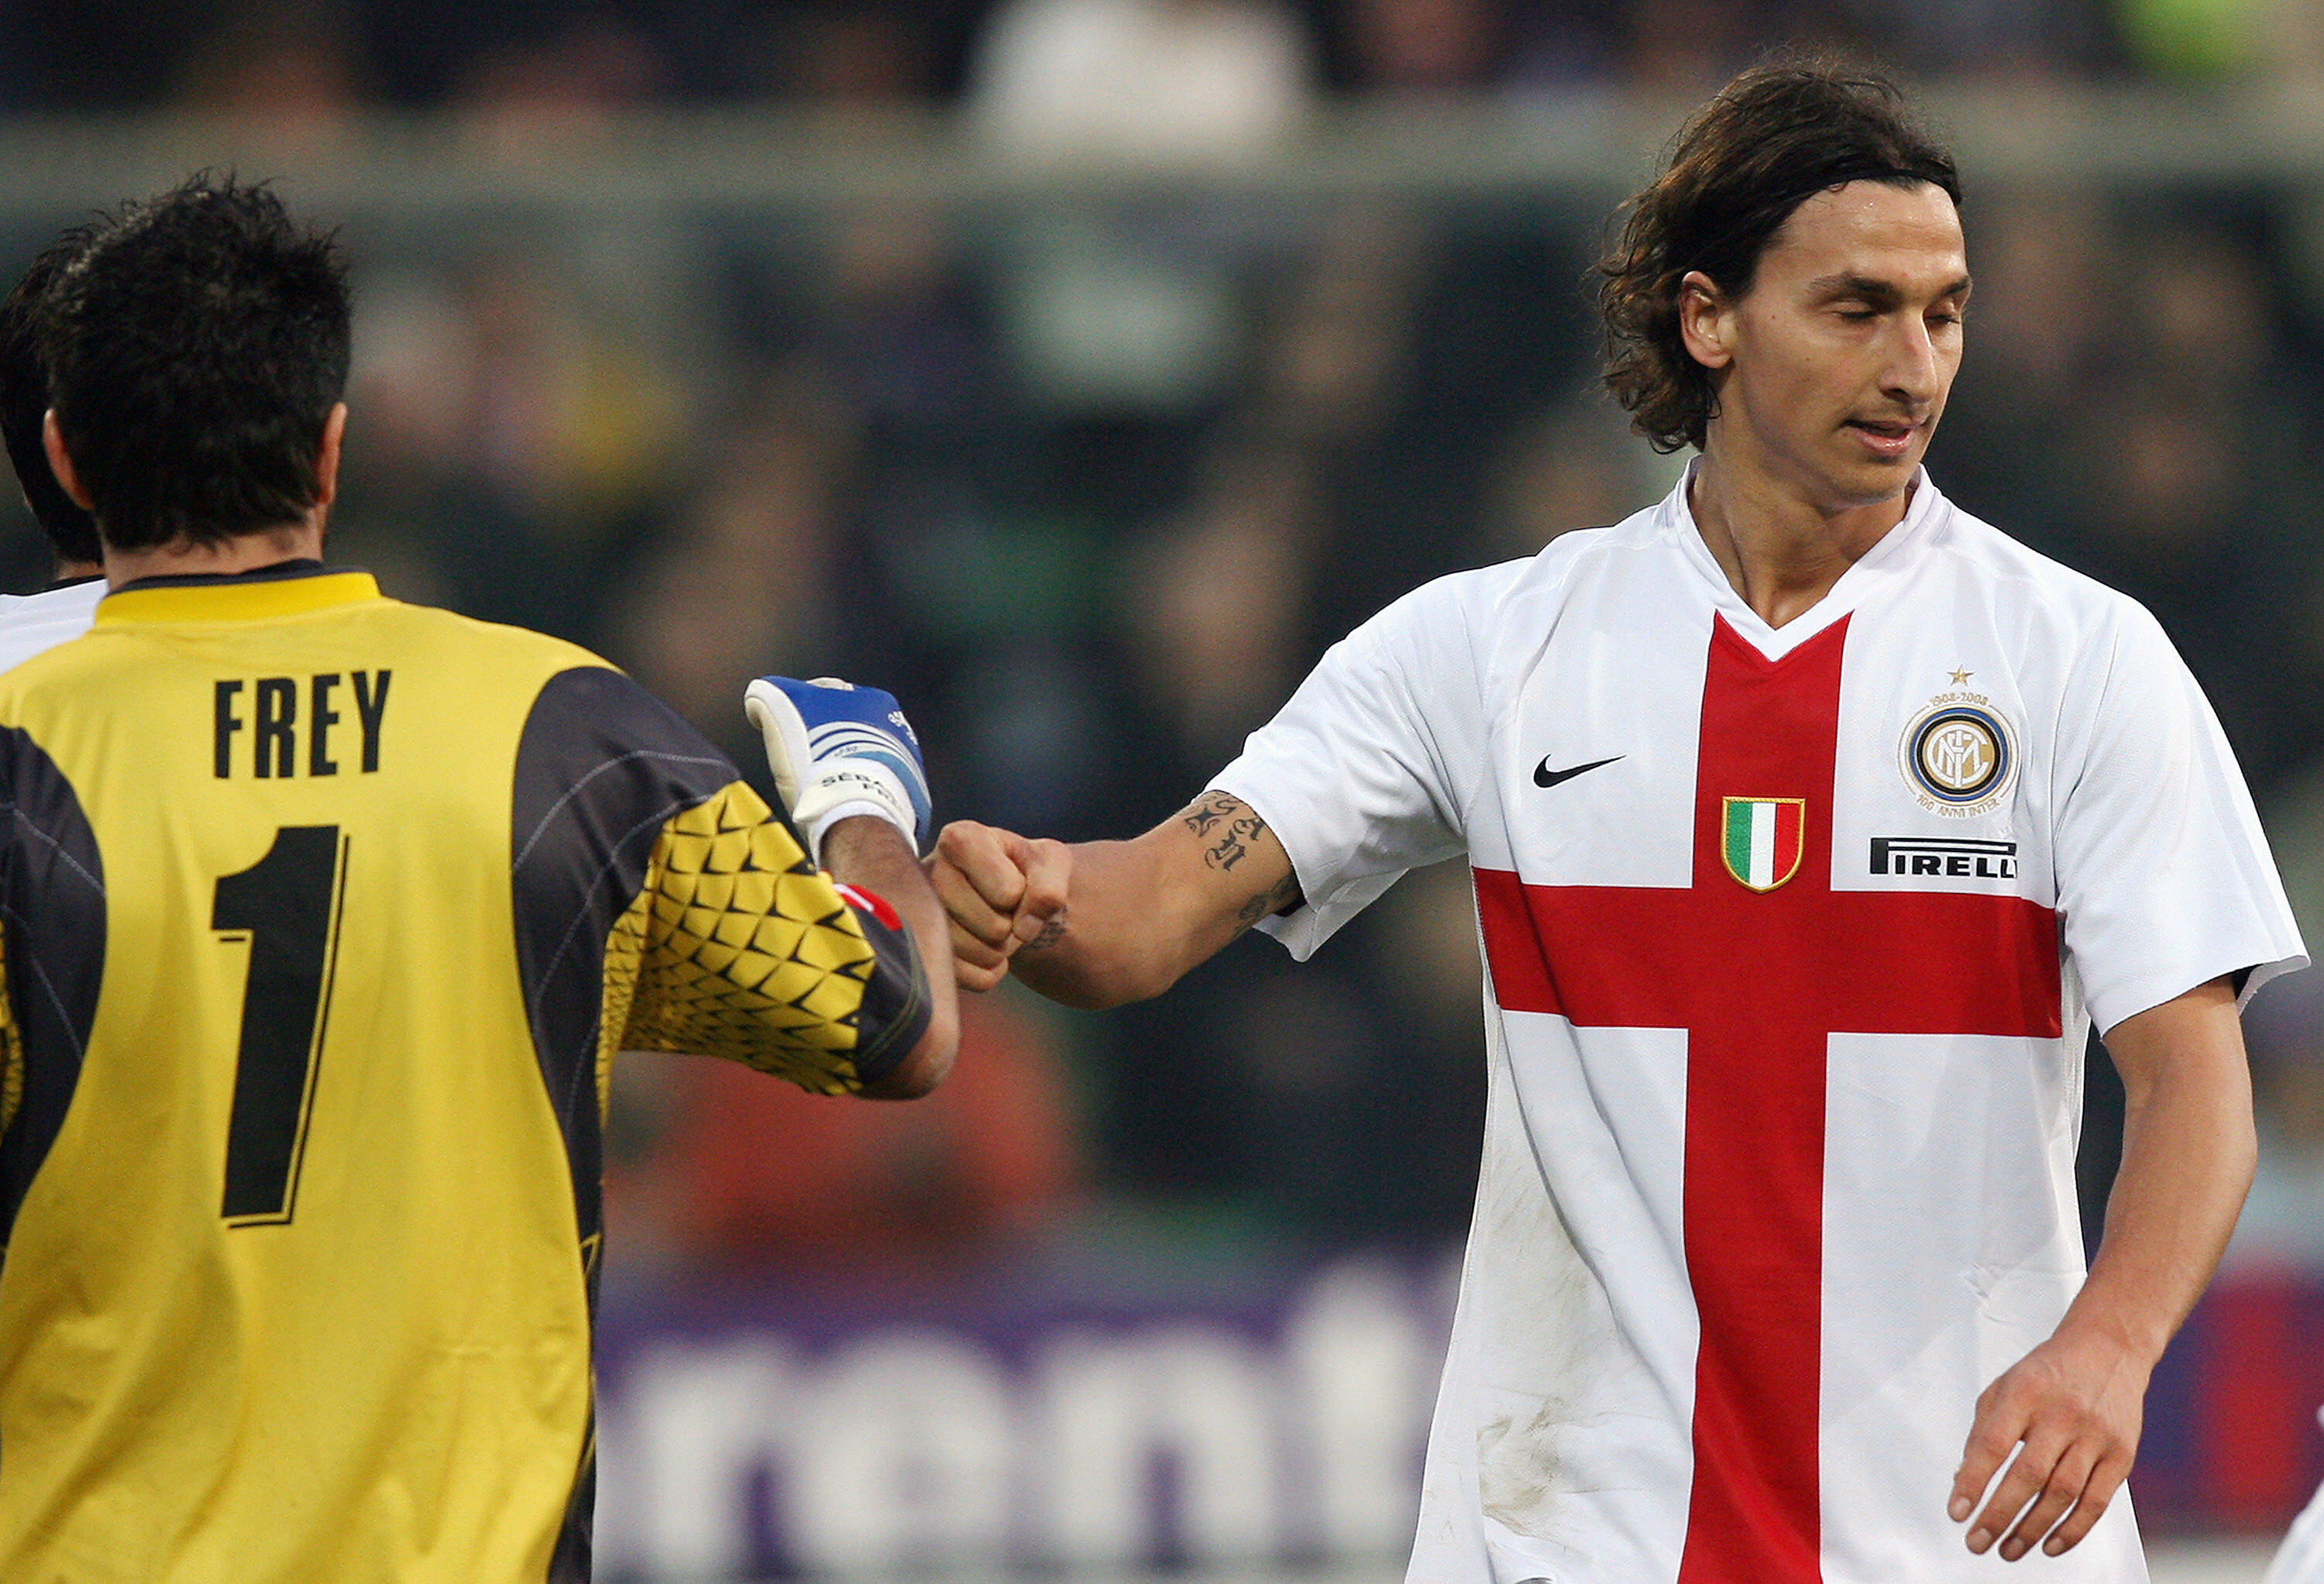 Inter Milan's Swedish forward Zlatan Ibrahimovic (R) congratulates  Fiorentina's  French goalkeeper  Sebastien Frey  after a missed goal during Fiorentina vs. Inter Milan, Italian serie A football match at Artemio Franchi stadium in Florence, 02 December 2007.  AFP PHOTO / ALBERTO PIZZOLI (Photo credit should read ALBERTO PIZZOLI/AFP/Getty Images)